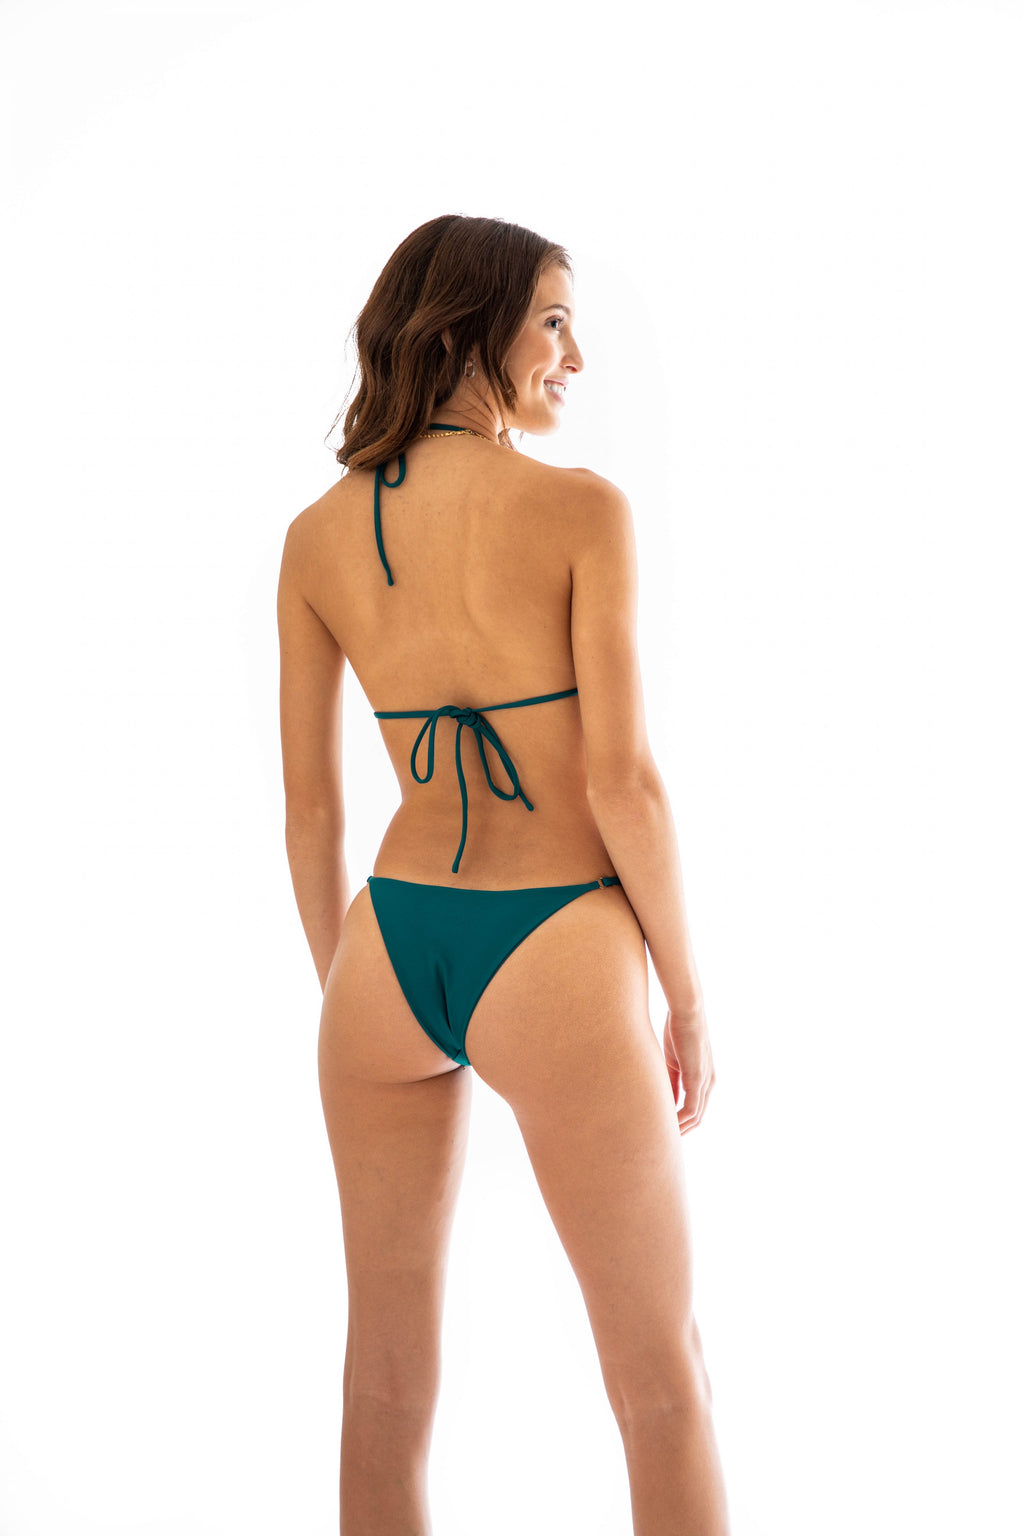 cheeky blue bikini bottom with ring detail on hip